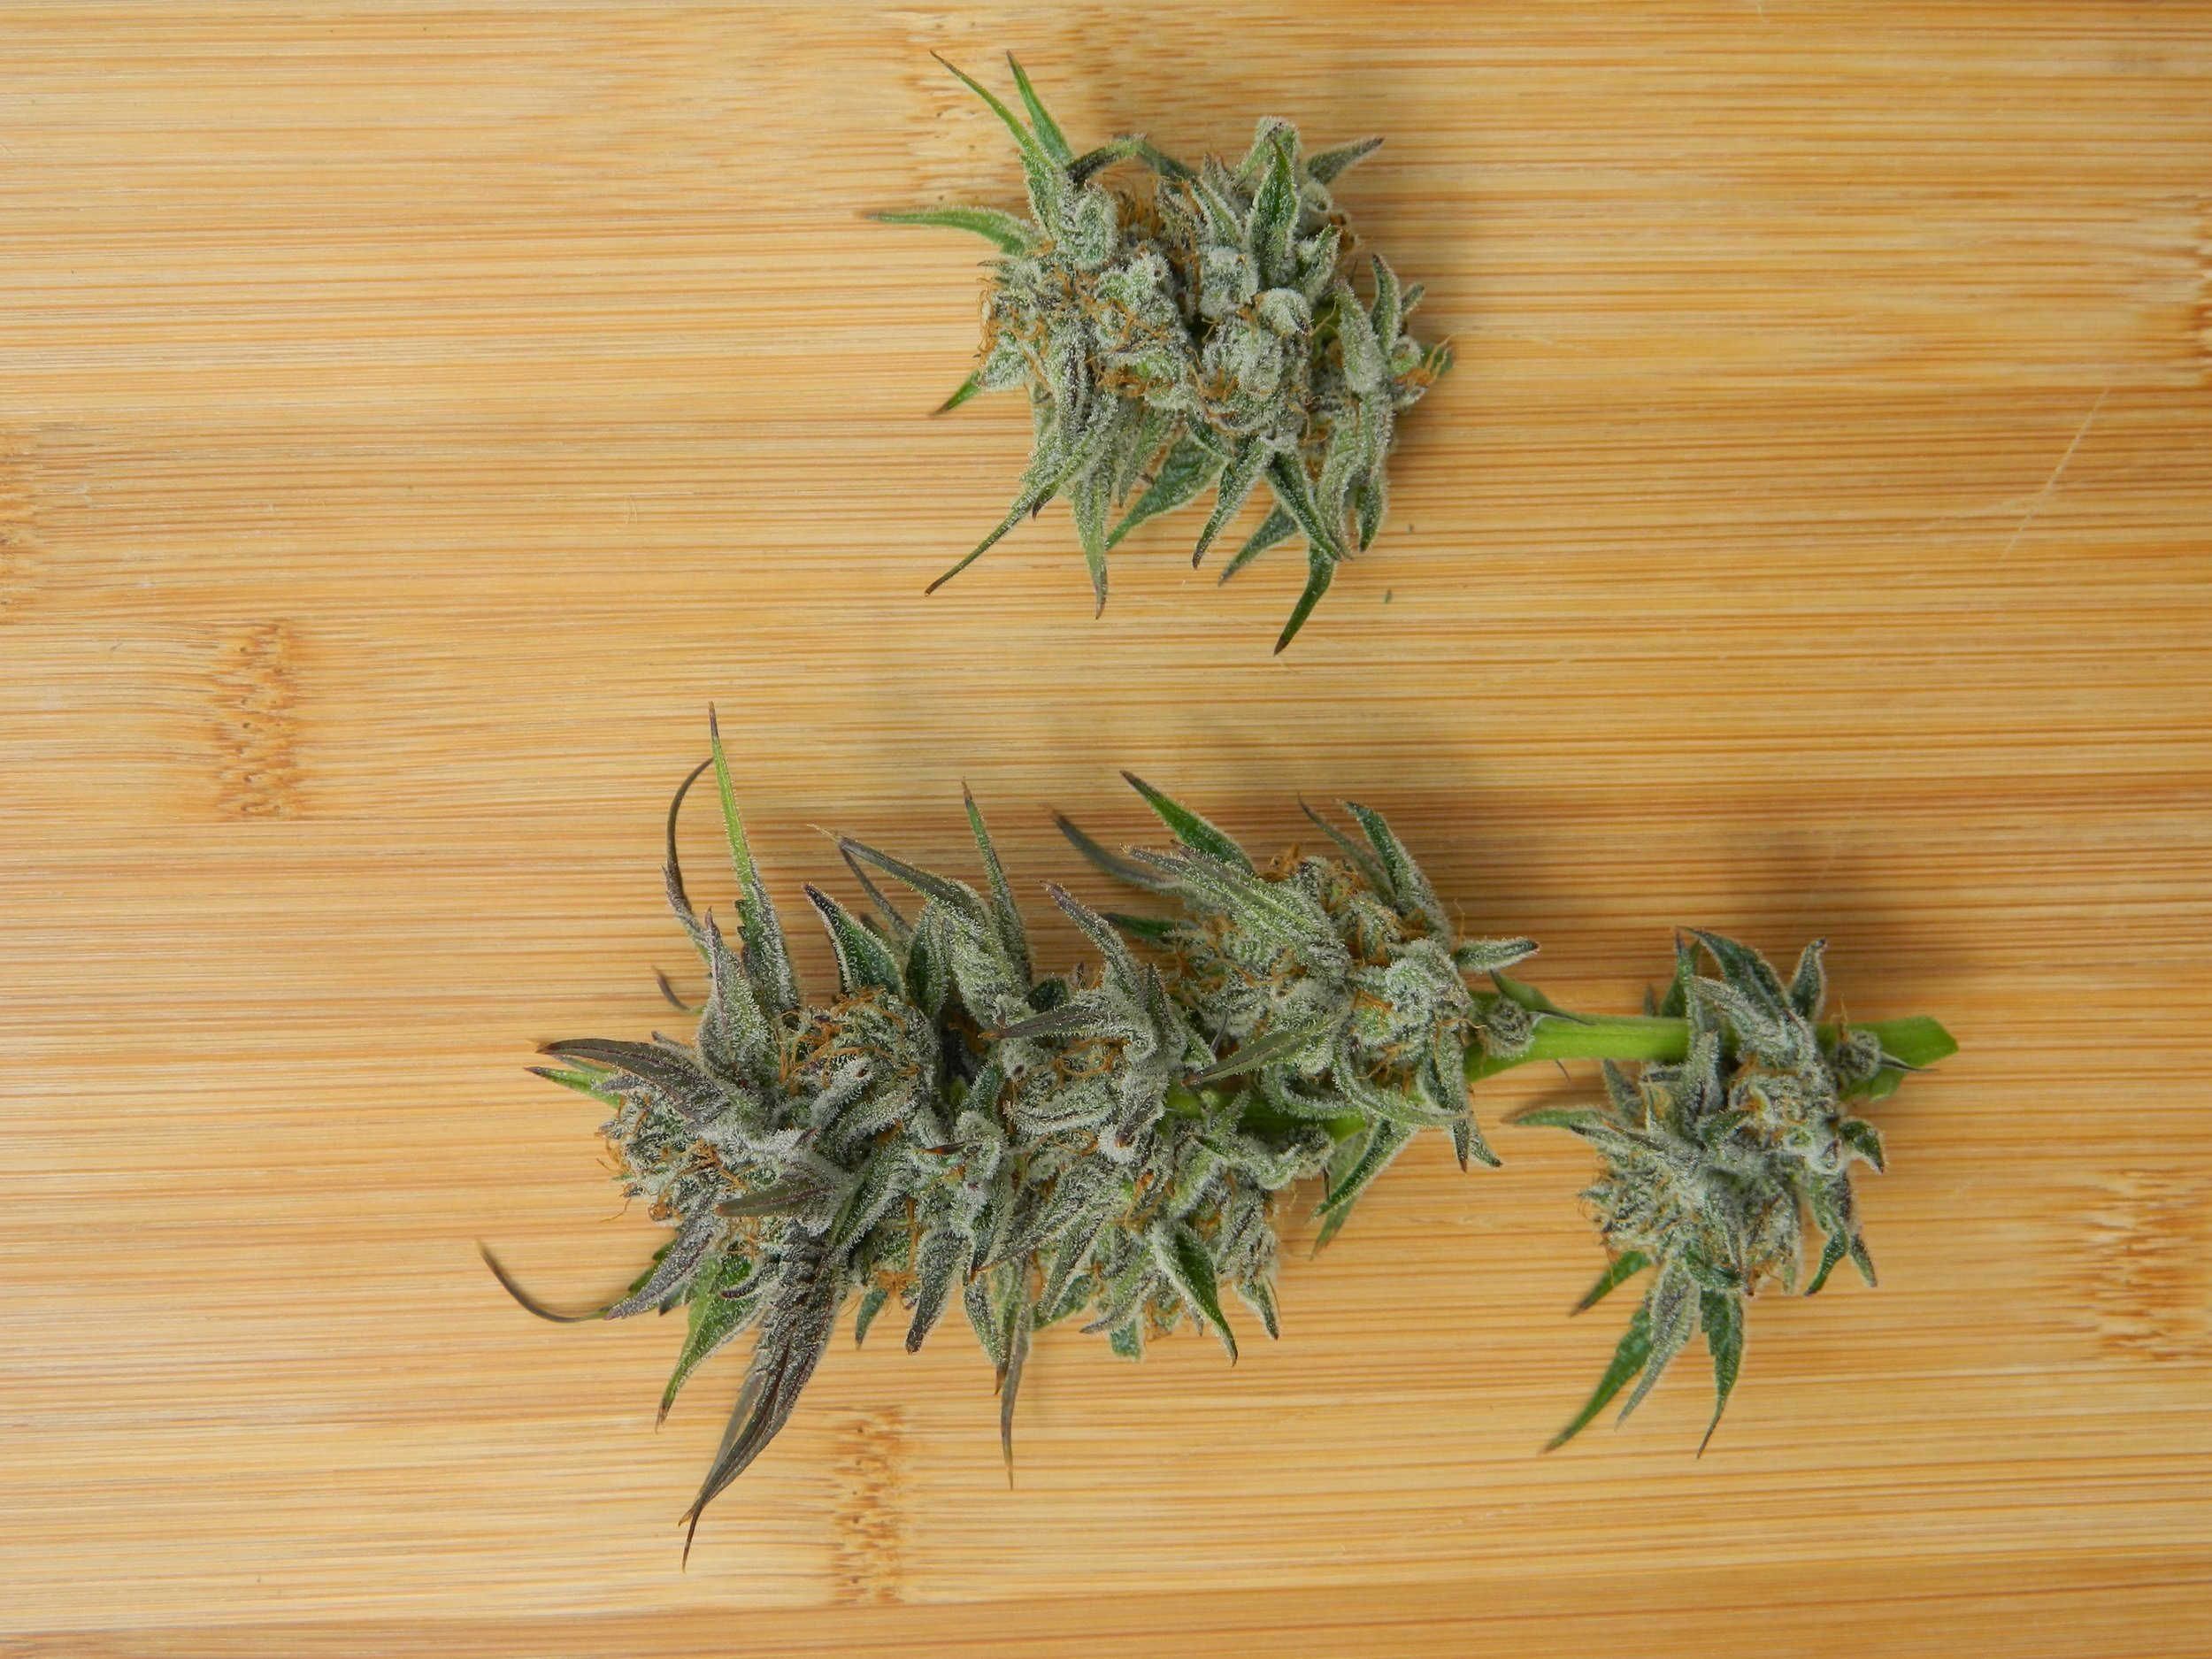 Conspiracy Kush - Parent Strains:Space Queen x Obama Kush.Characteristics:Relaxed, creative, uplifting, and enhanced.Useful for:Pain, stress, sleep, and headaches.Flavor Profile: Fruity, citrus, berry, tangy, pepper, skunky.